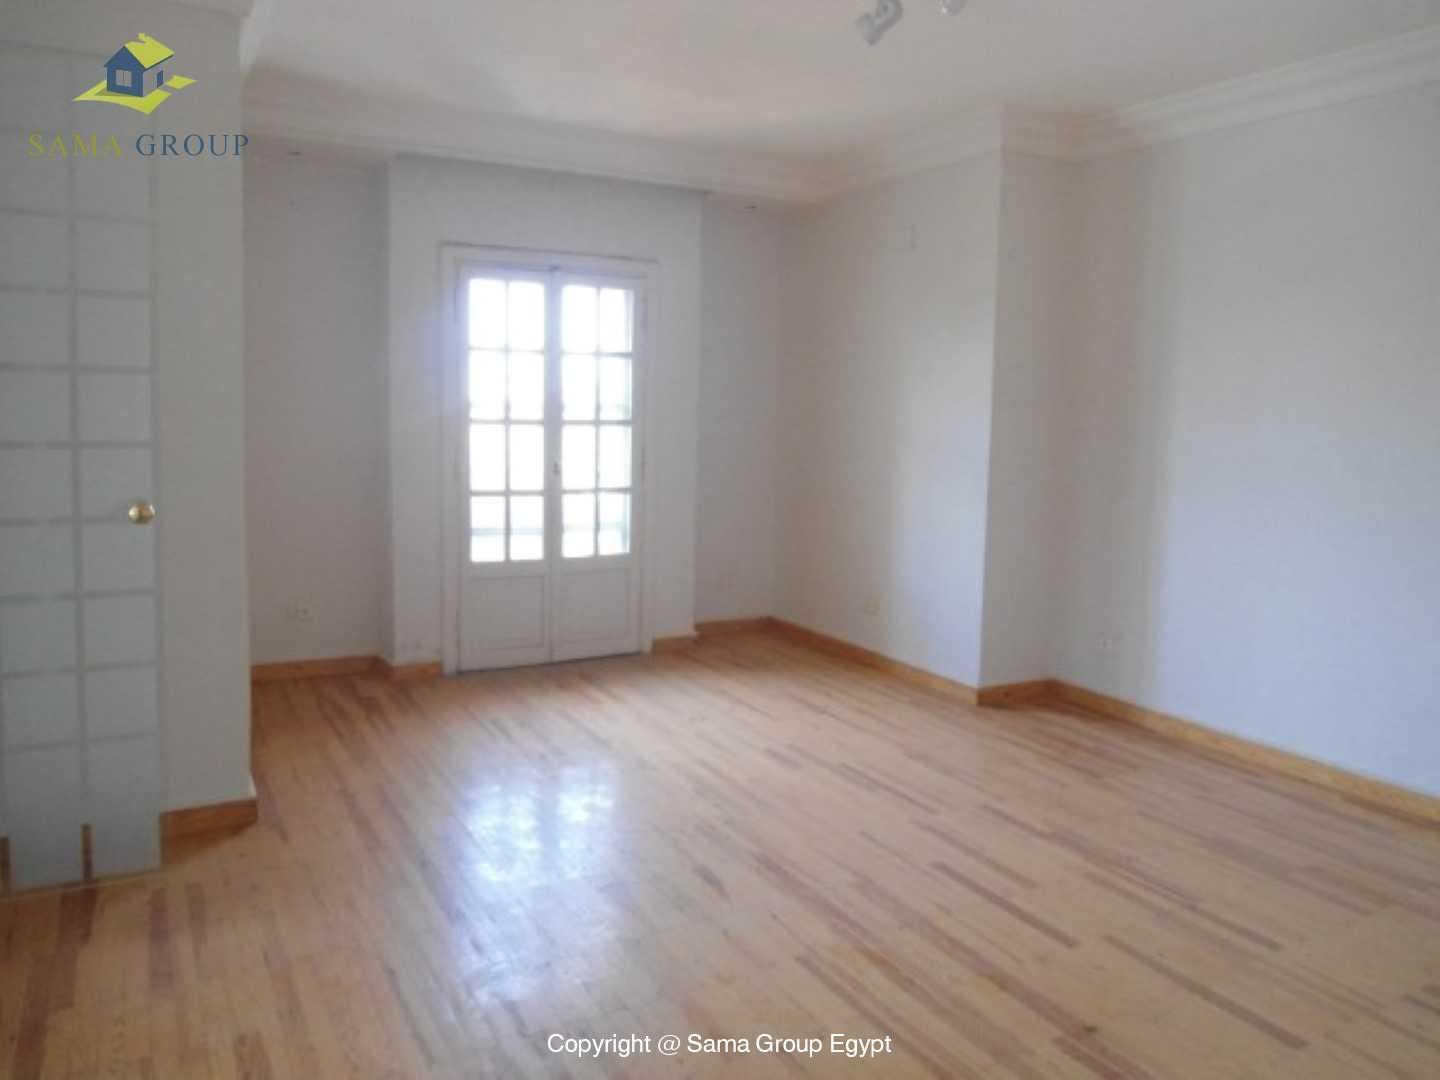 Penthouse Triplex with Swimming Pool For Rent In Maadi,Semi furnished,Penthouse NO #16